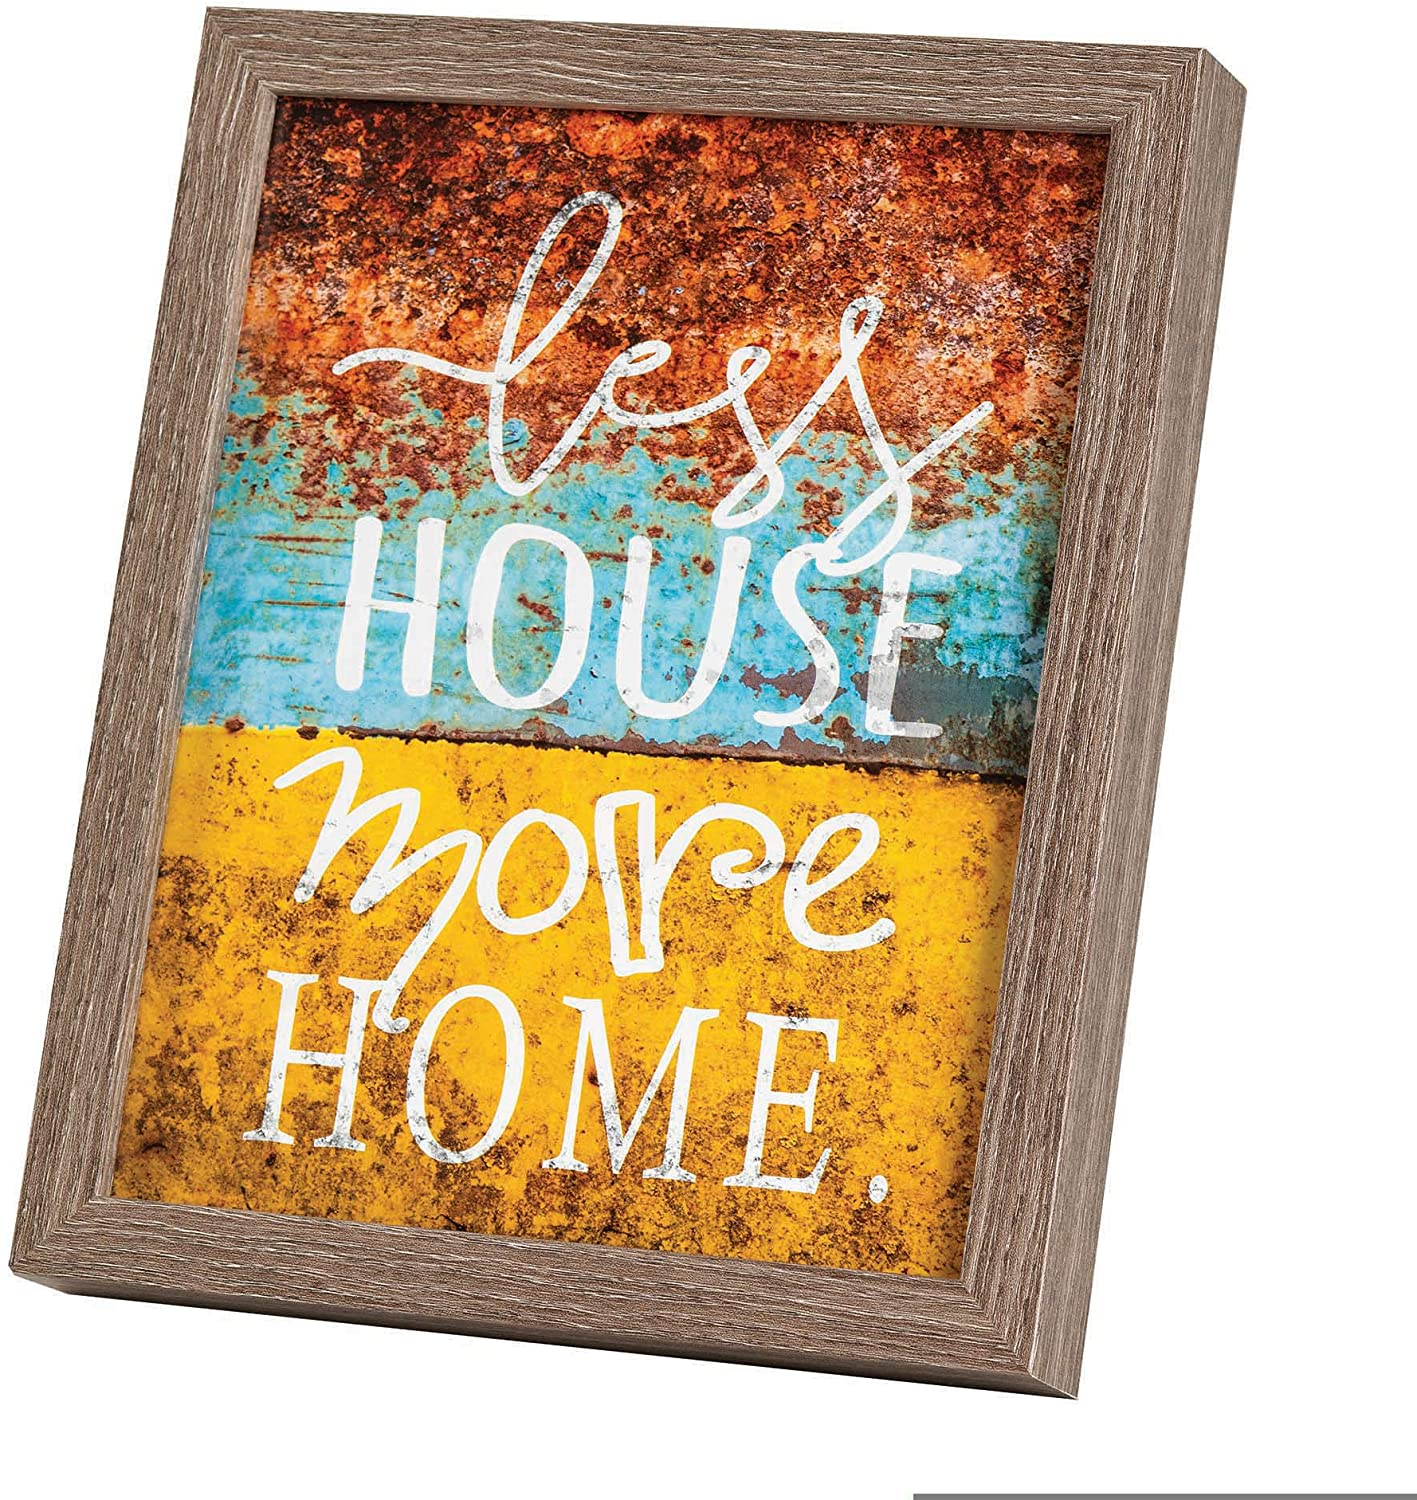 Less House More Home Distressed Orange 11 x 9 Wood Decorative Tabletop or Wall Frame